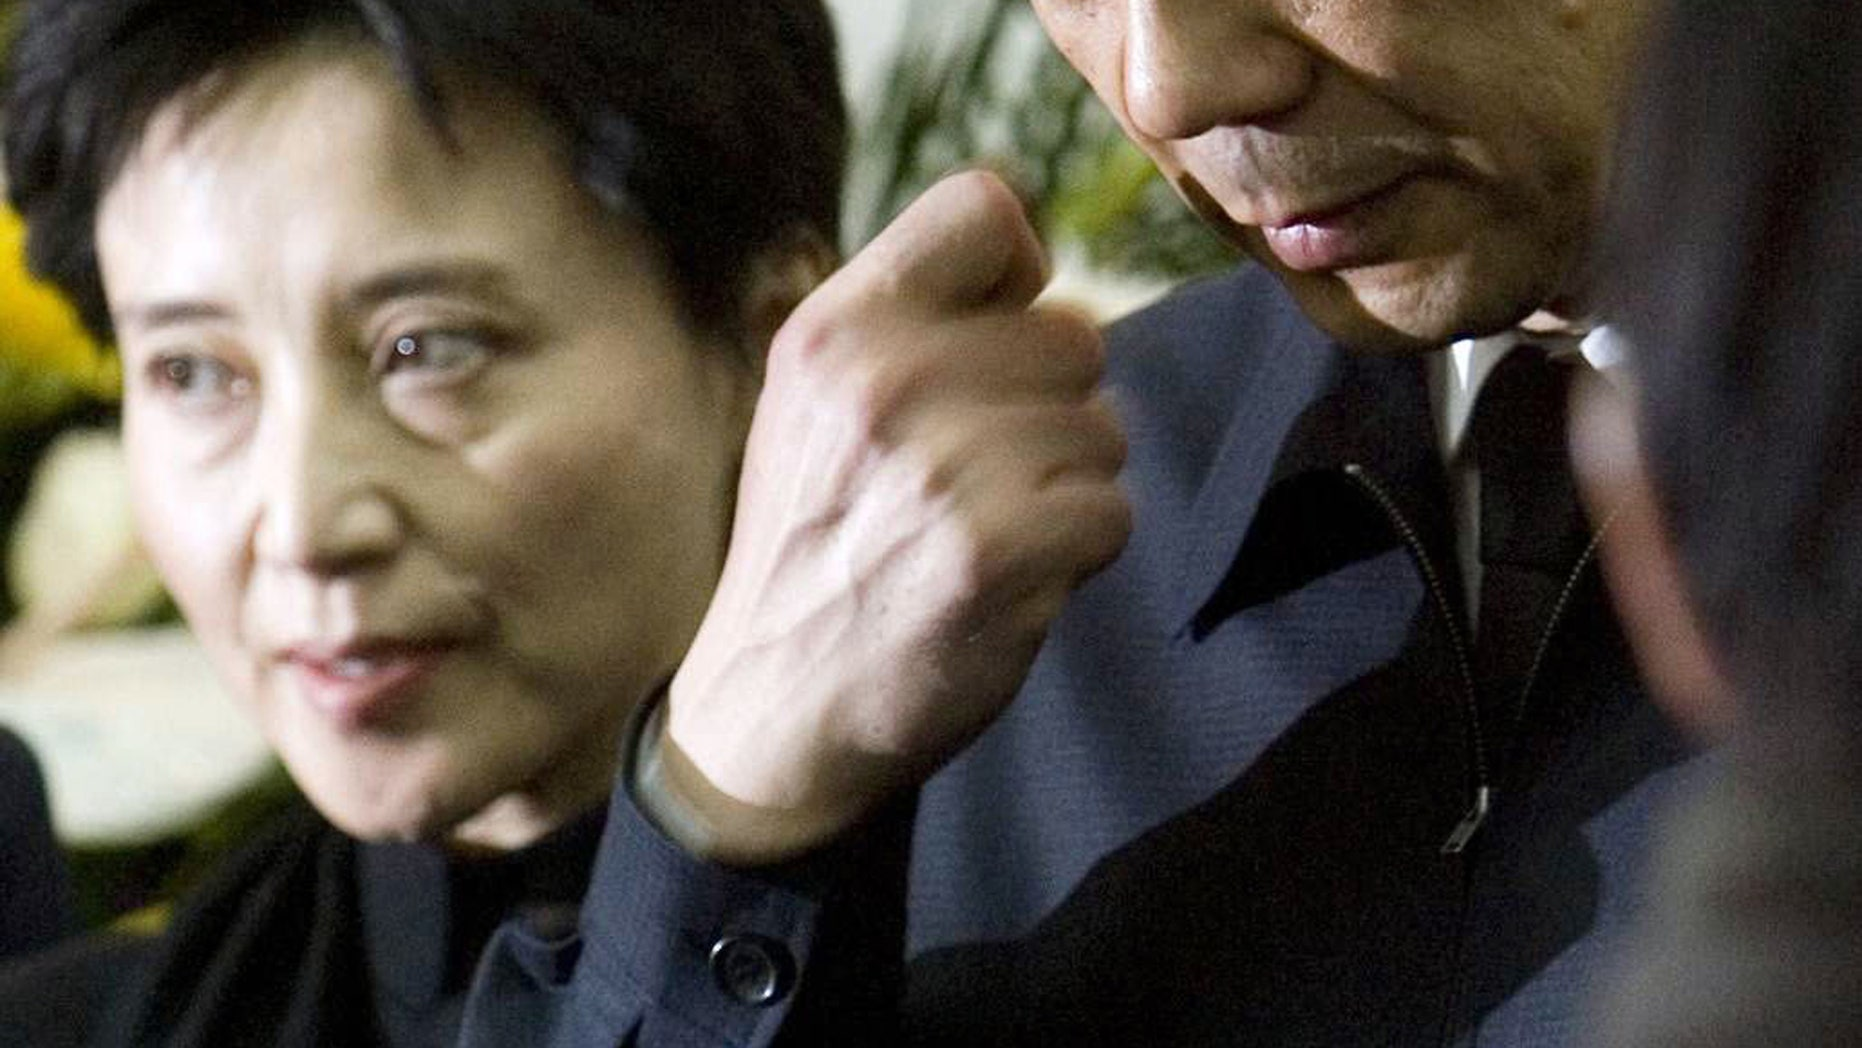 Jan. 17, 2007:  In this file photo, former Chongqing Communist Party Secretary Bo Xilai, right, accompanied by his wife Gu Kailai, attends a funeral for his father in Beijing.